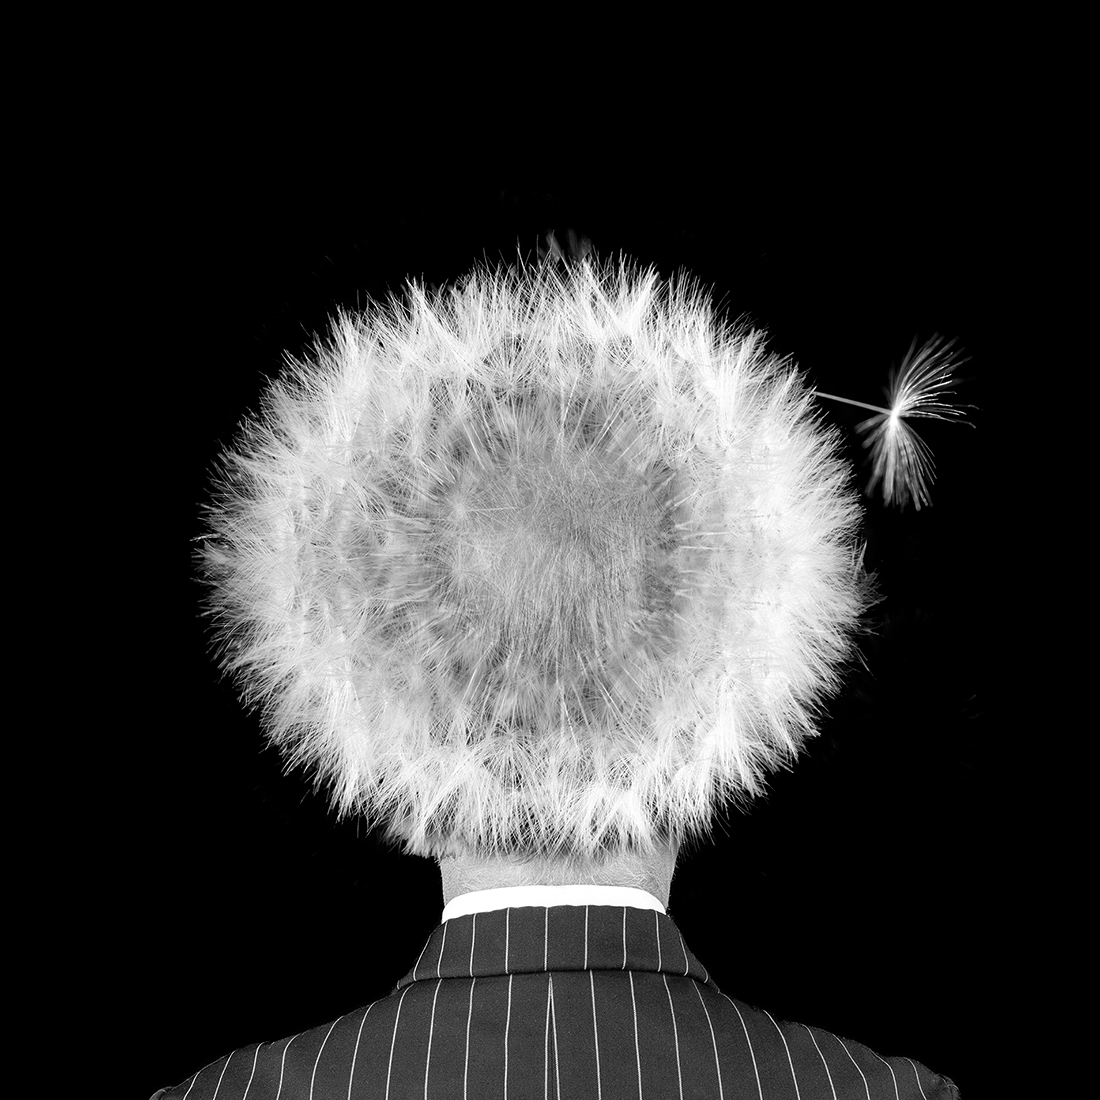 1ST PLACE – Black & White Conceptual PHOTO of the Year 2019, hairloss – Michael Knudsen